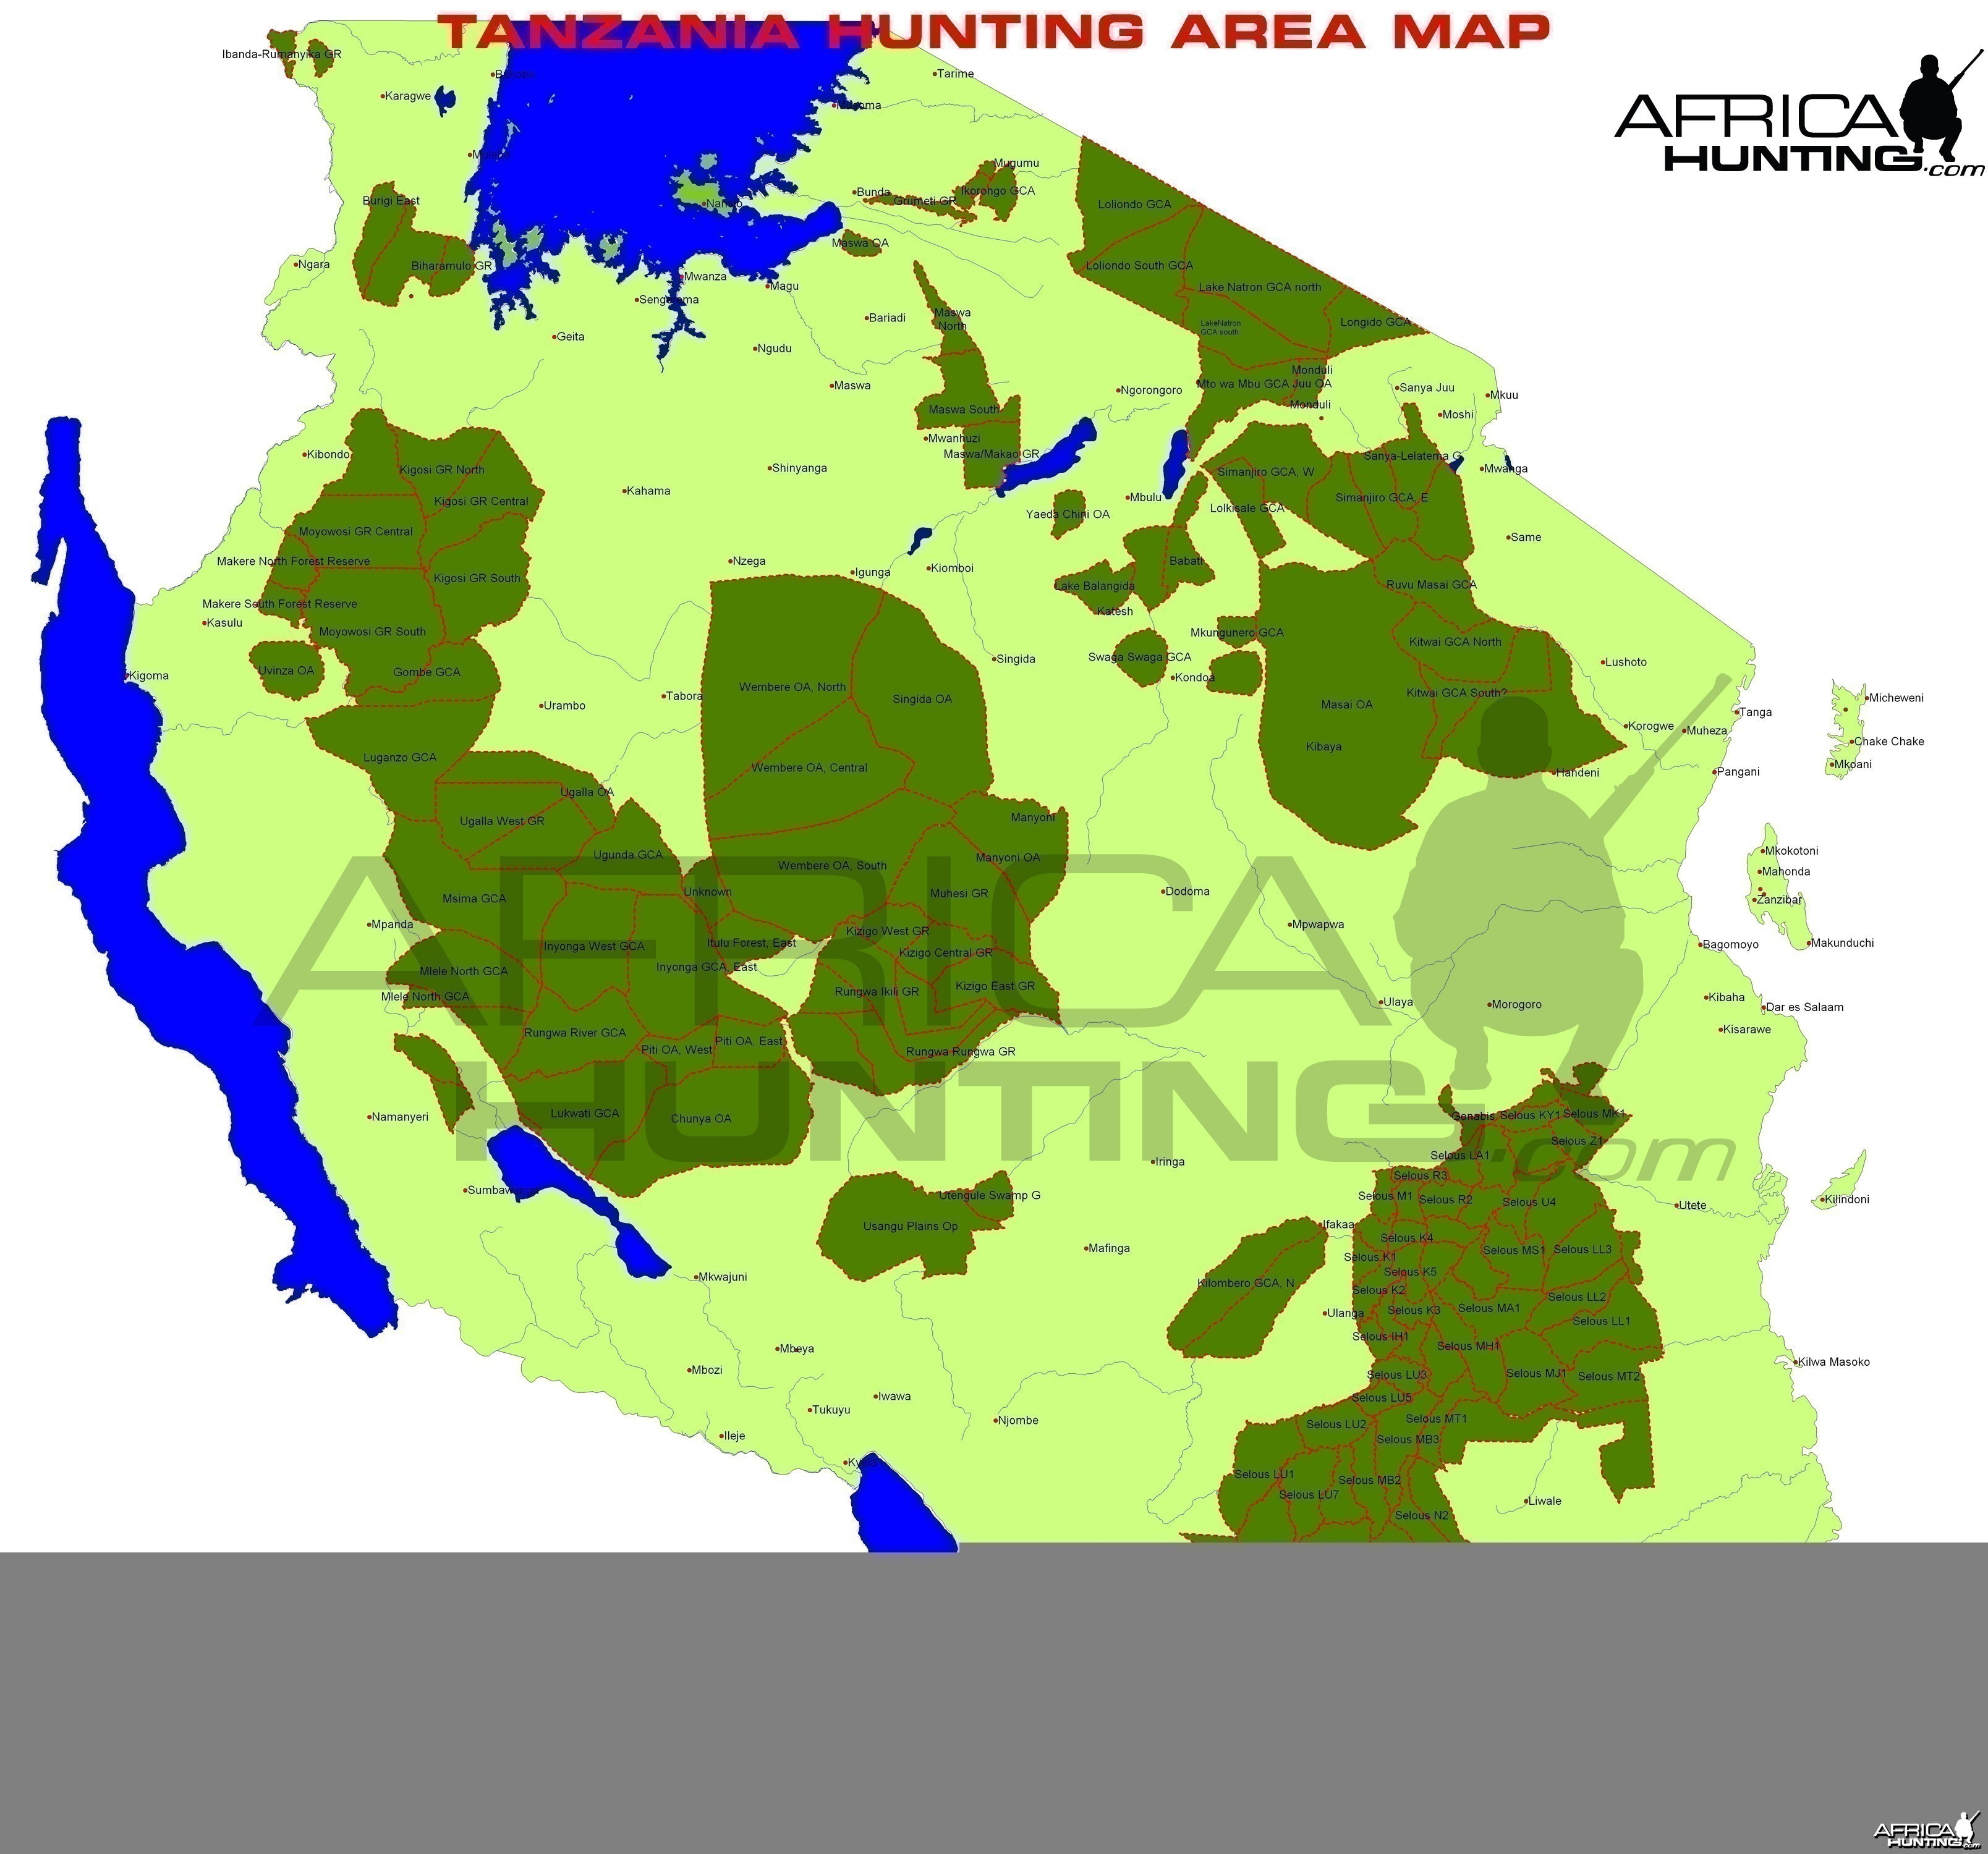 Tanzania Hunting Area Map